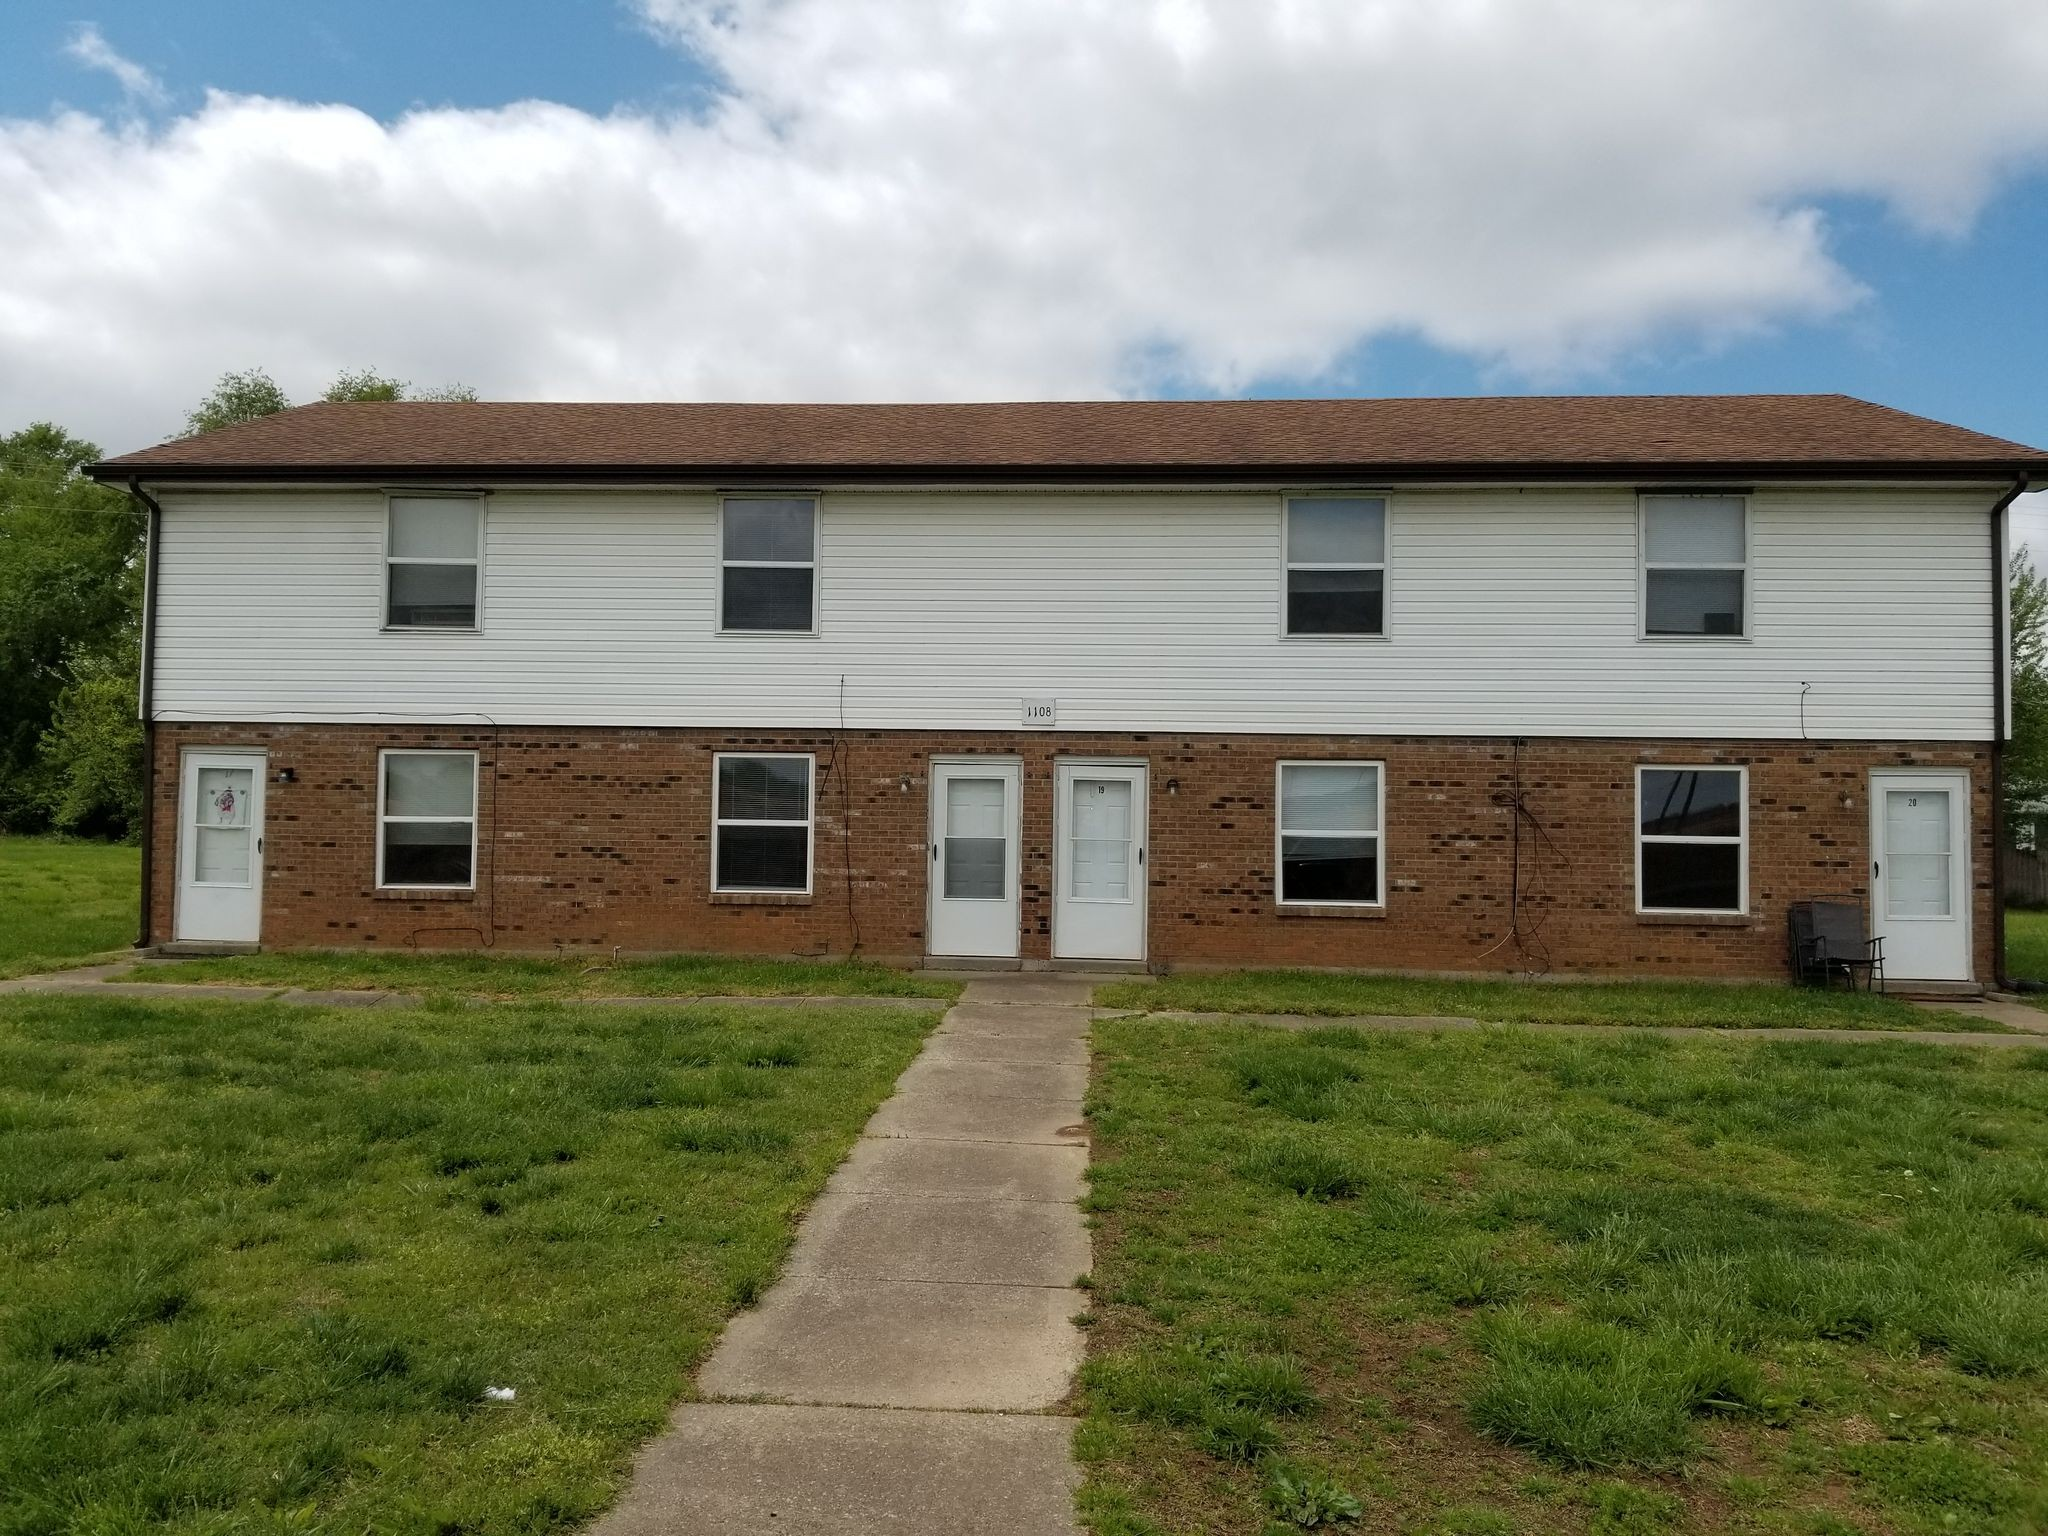 1108 Pembroke Oak Grove Rd, Oak Grove, KY 42262 - Oak Grove, KY real estate listing